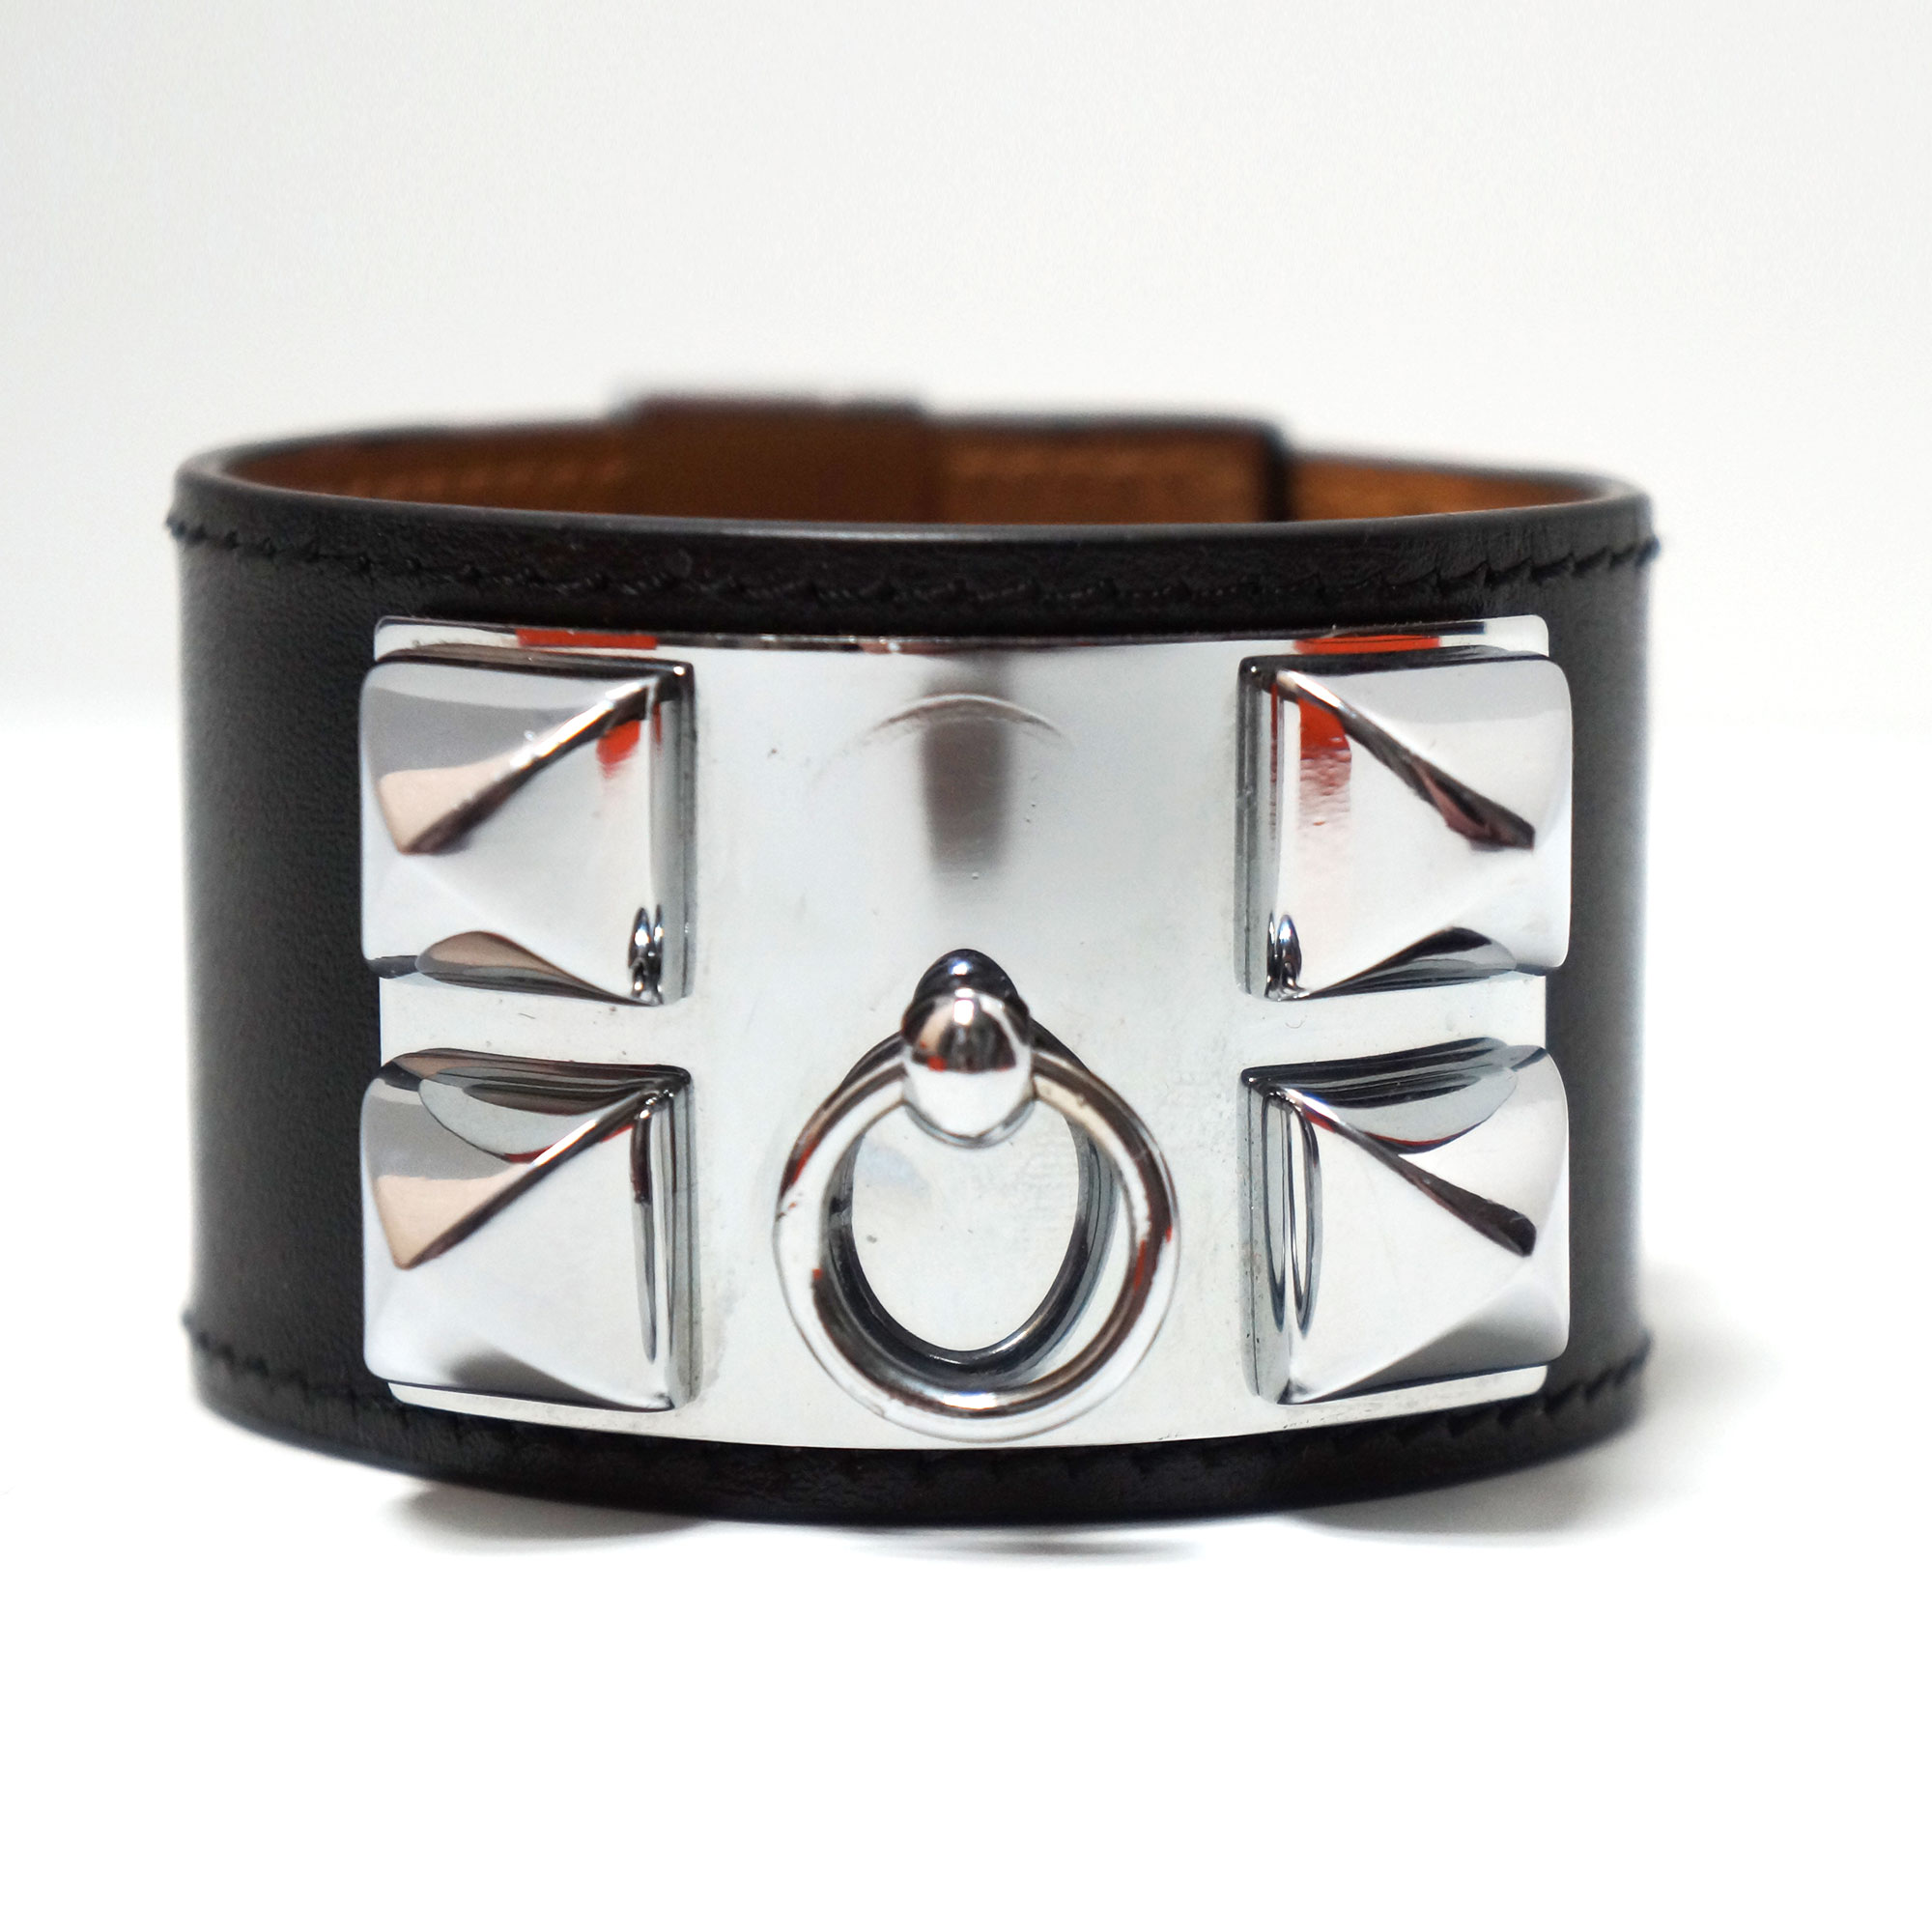 de realreal bracelets herm collier bracelet products the chien cuff s hermes jewelry enlarged